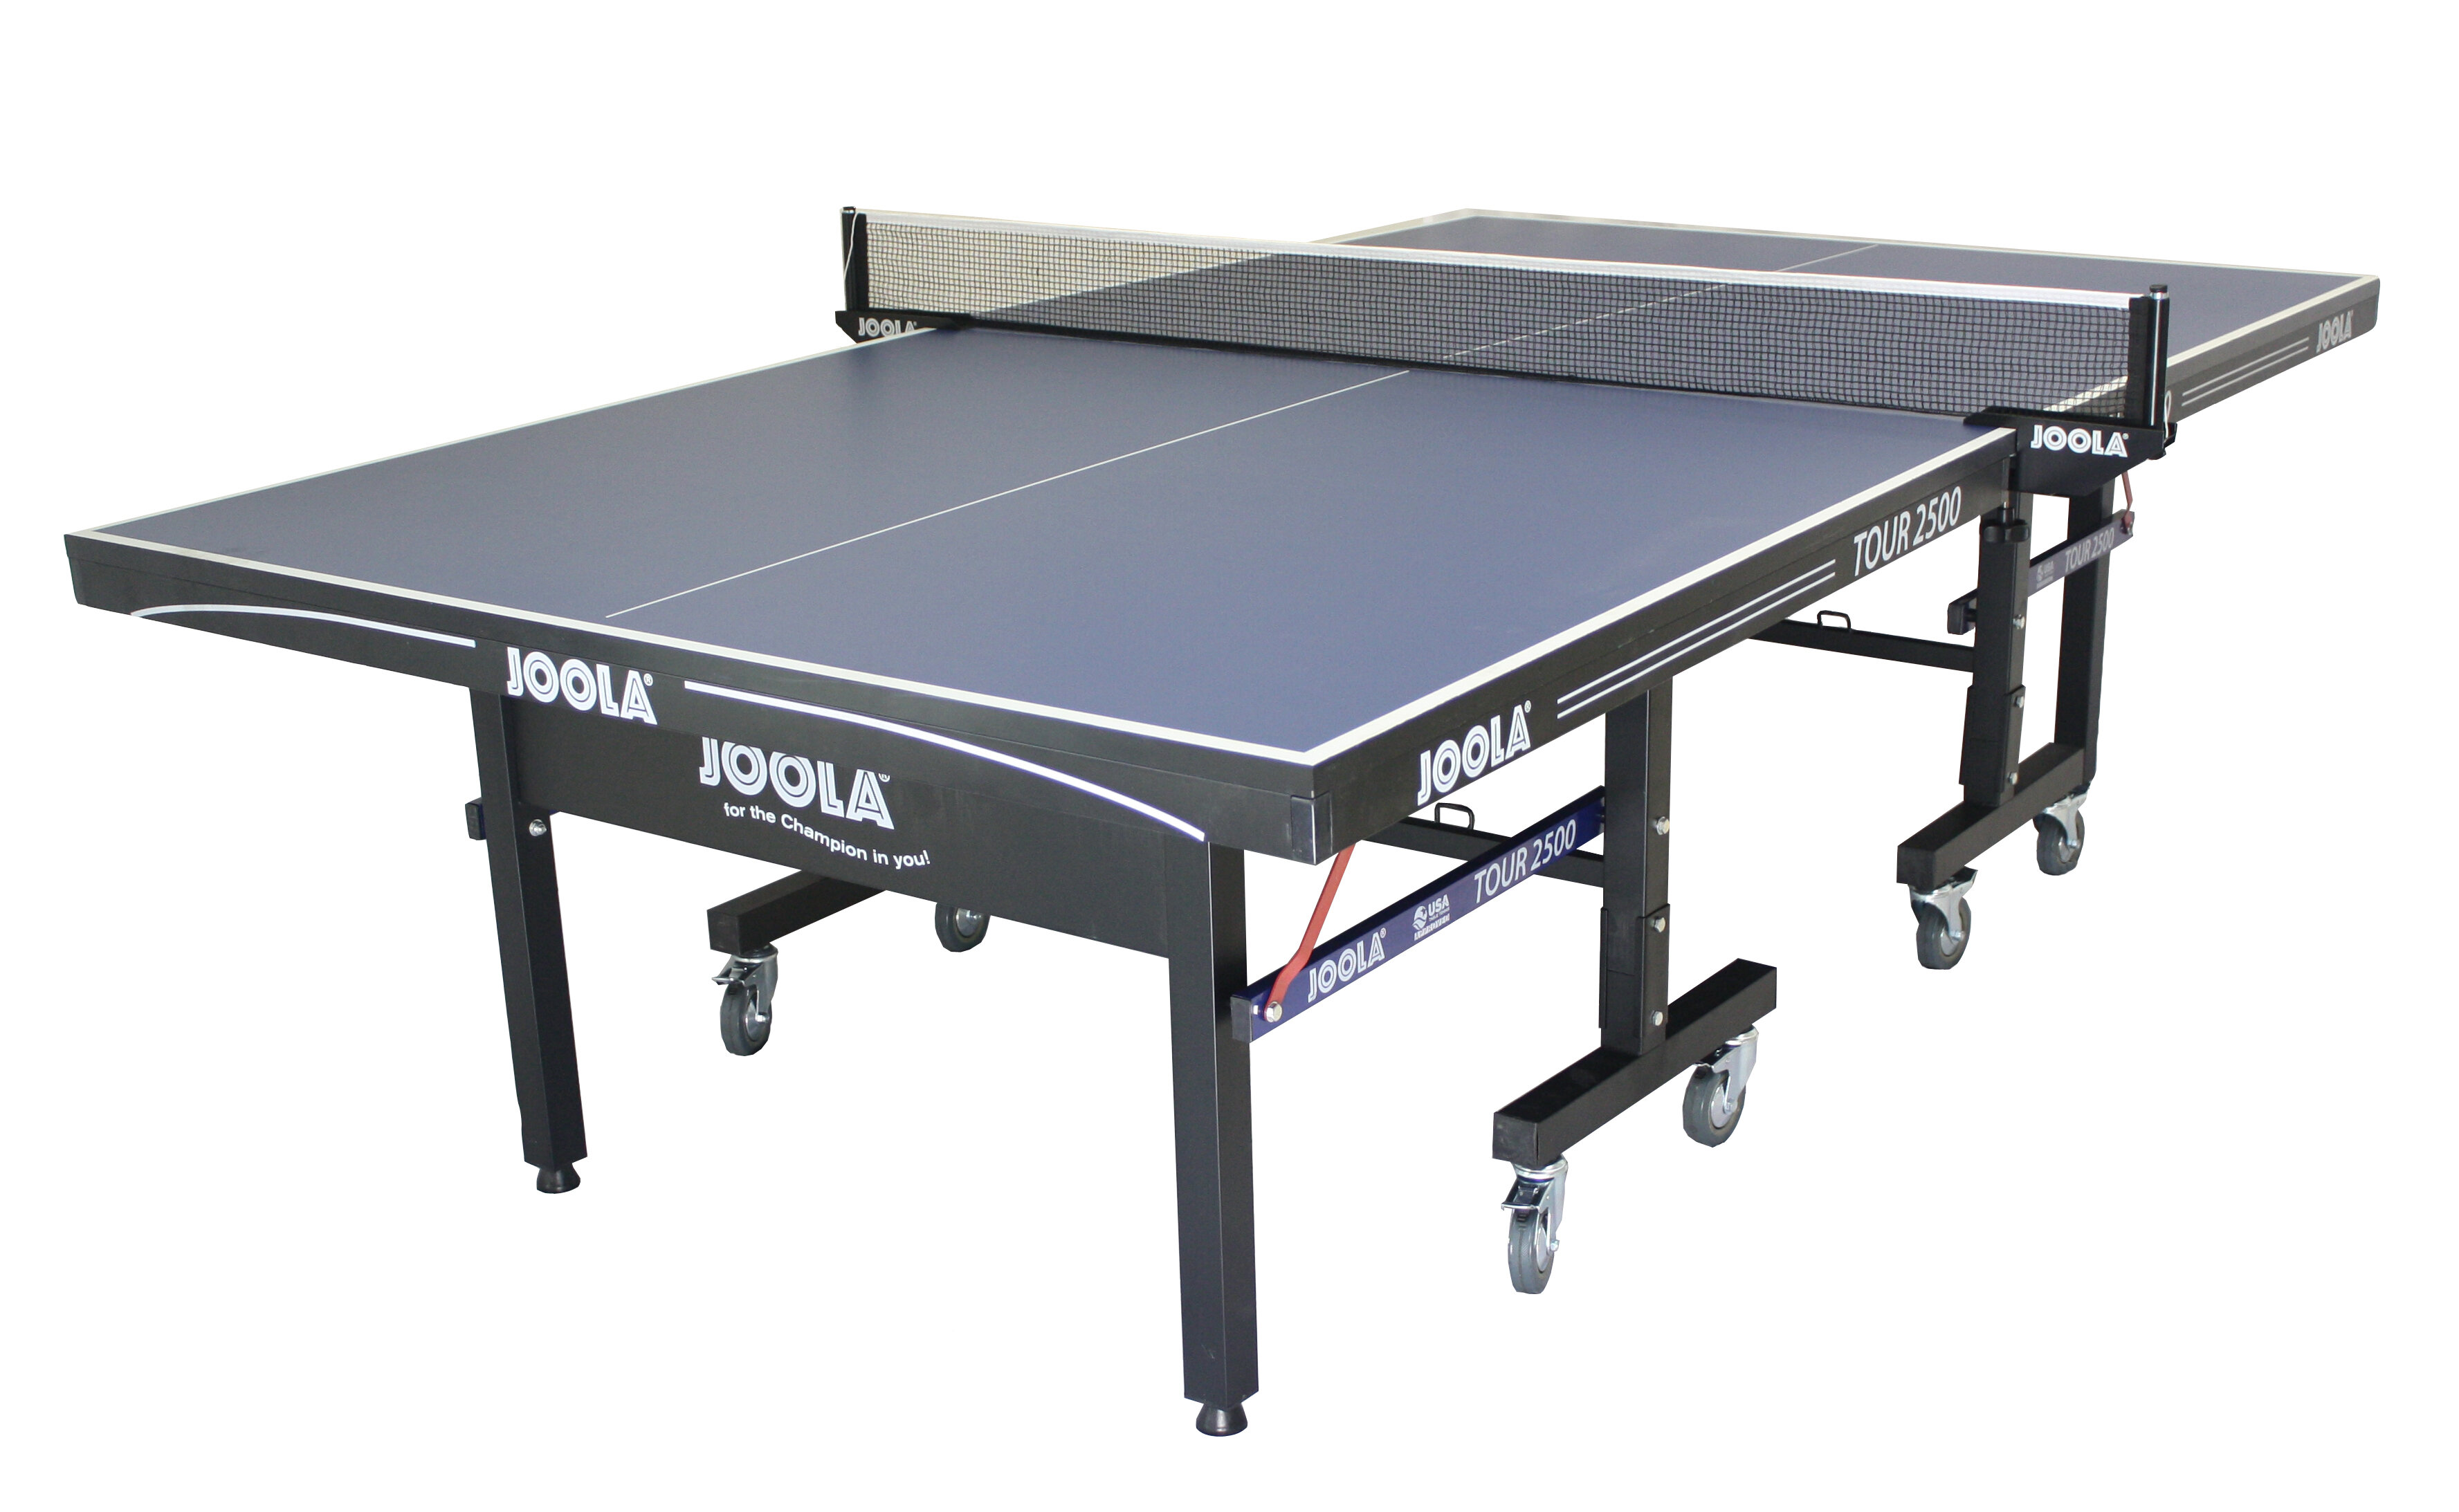 sc 1 st  Wayfair & Joola JOOLA Tour 2500 Table Tennis Table and Net Set | Wayfair